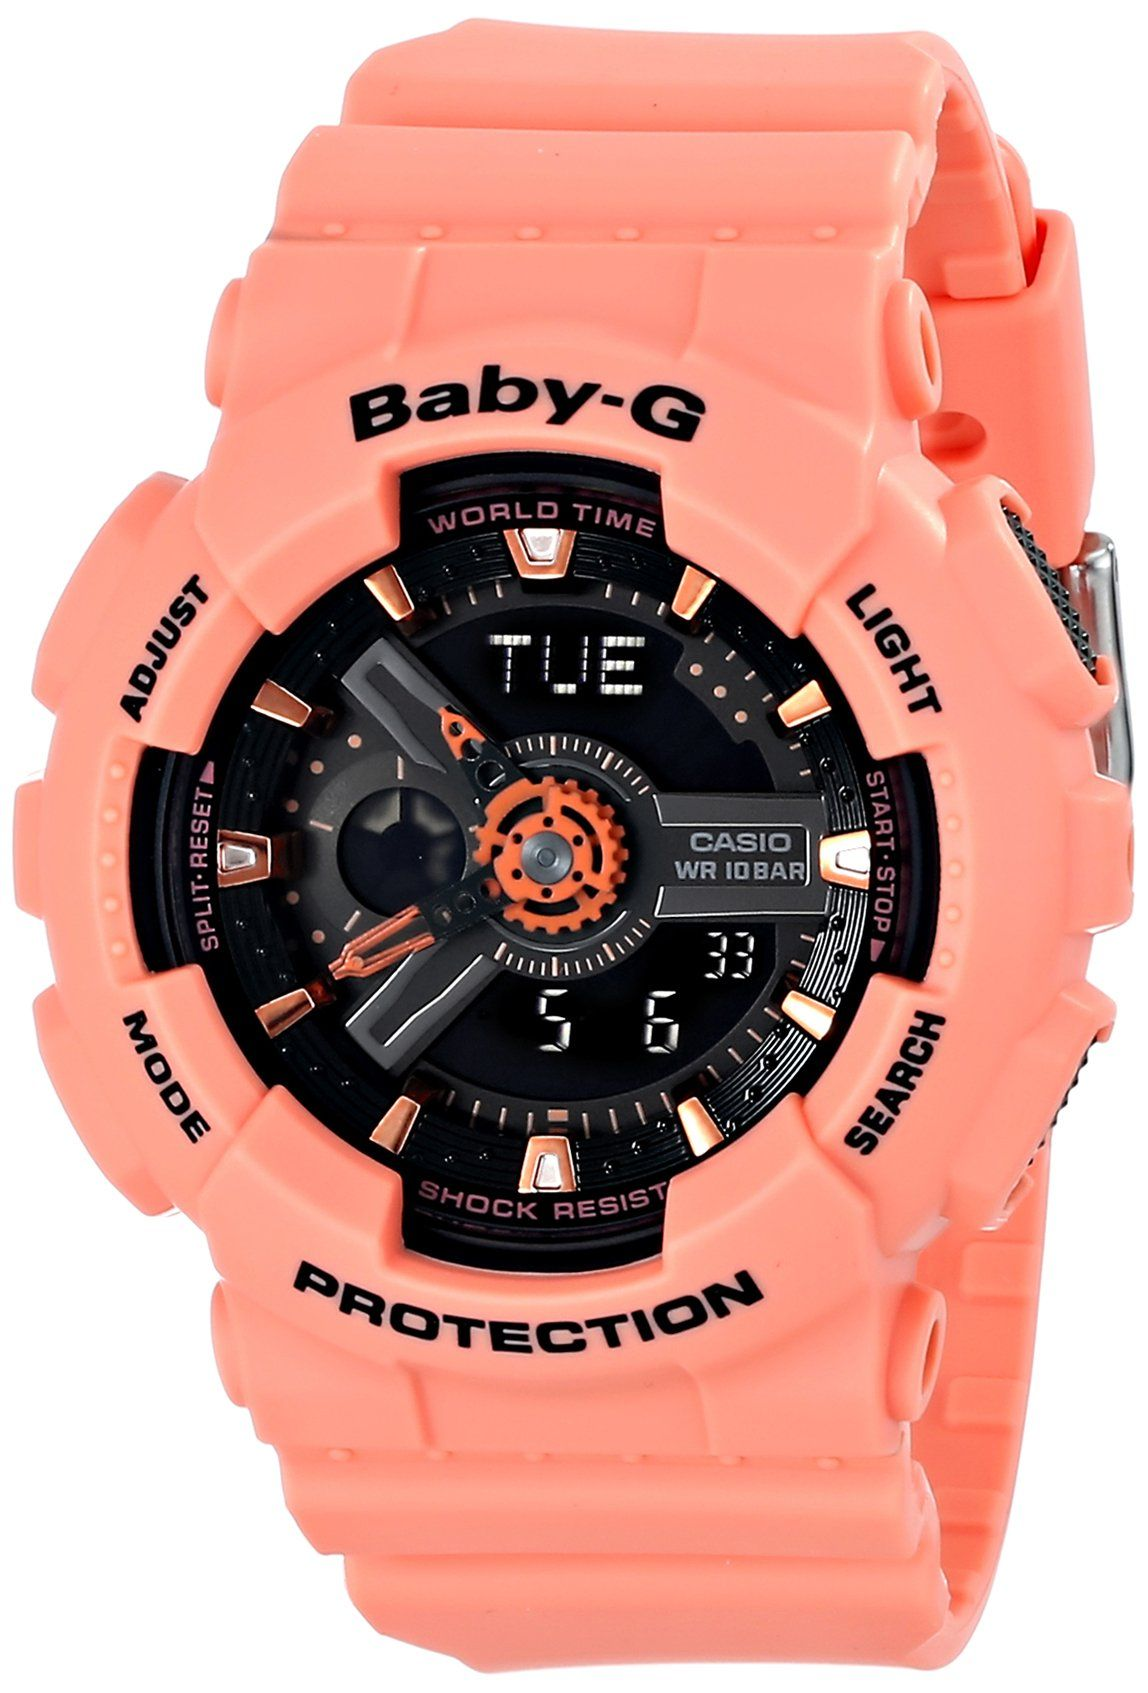 Casio Women s BA-111-4A2CR Baby-G Analog-Digital Display Quartz Orange Watch e707e0c79d